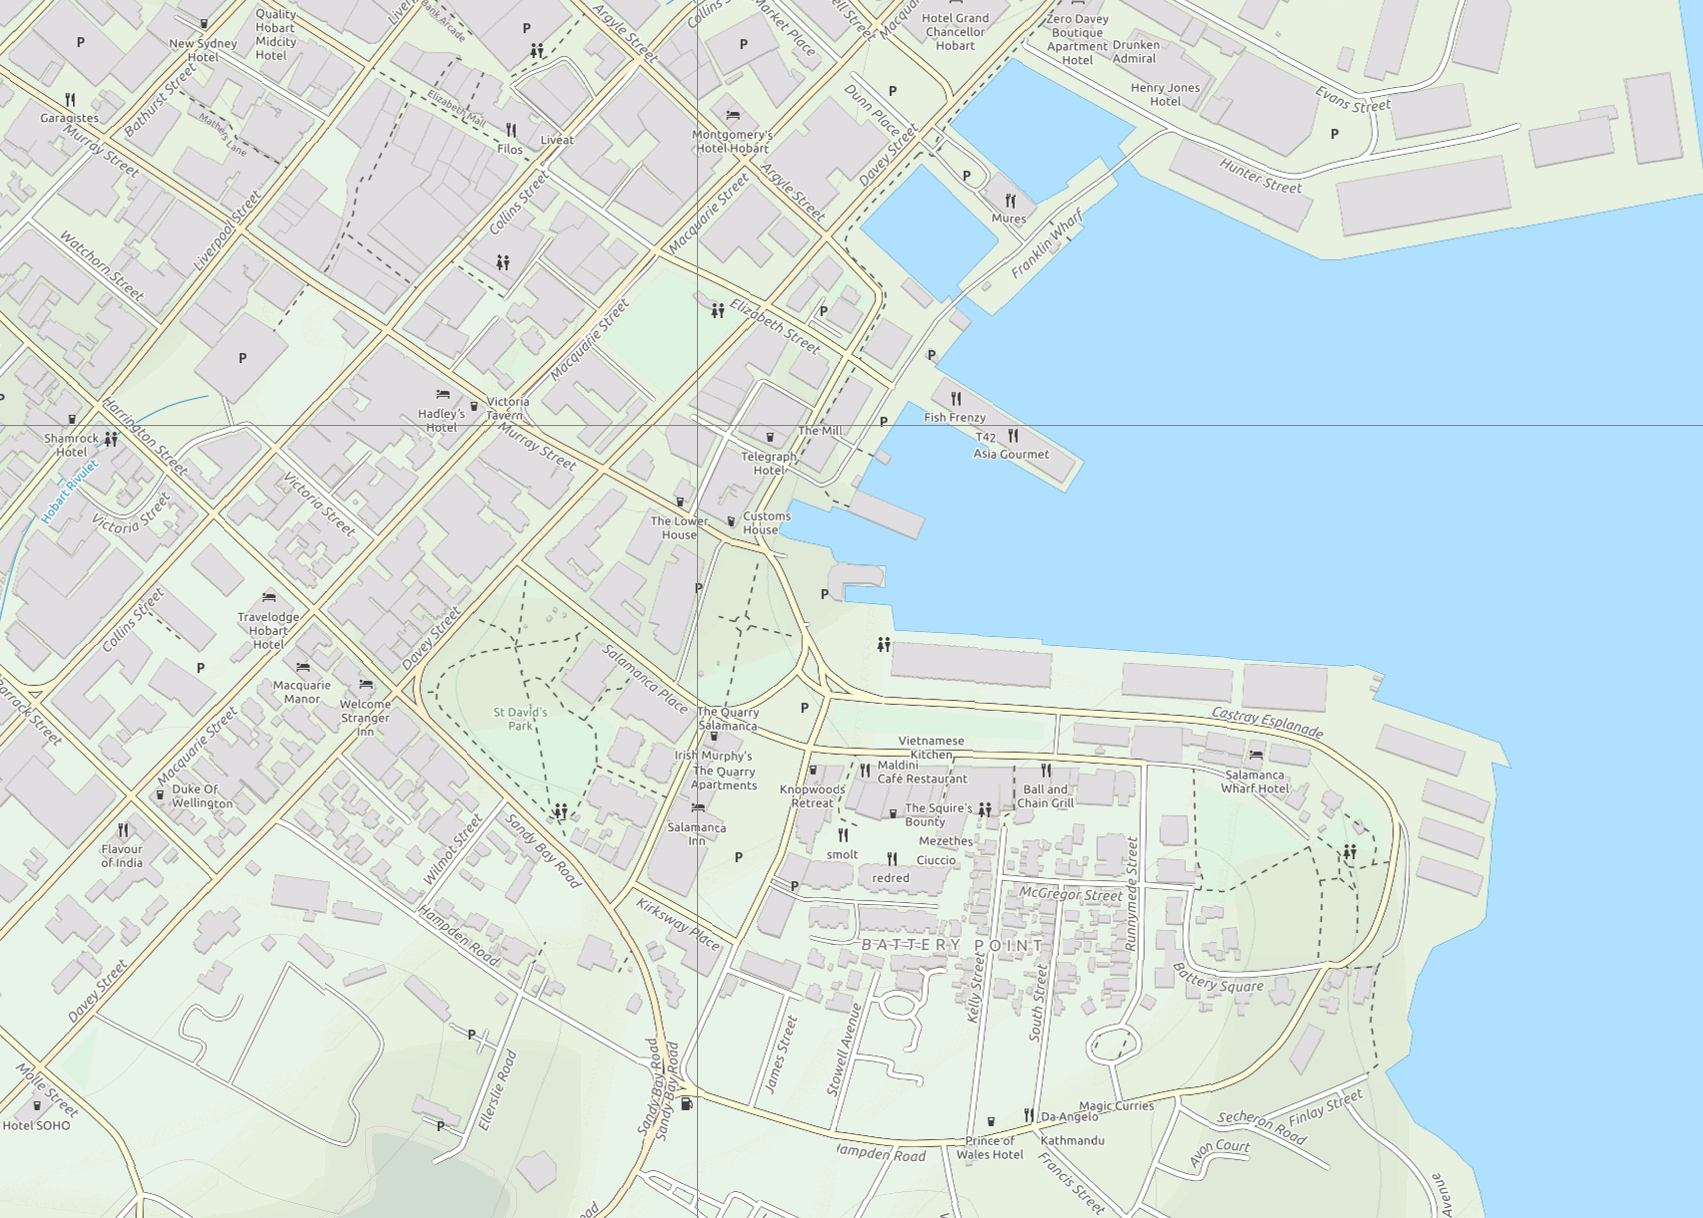 Hobart Area Tourist Street Map Paul Johnson Avenza Maps